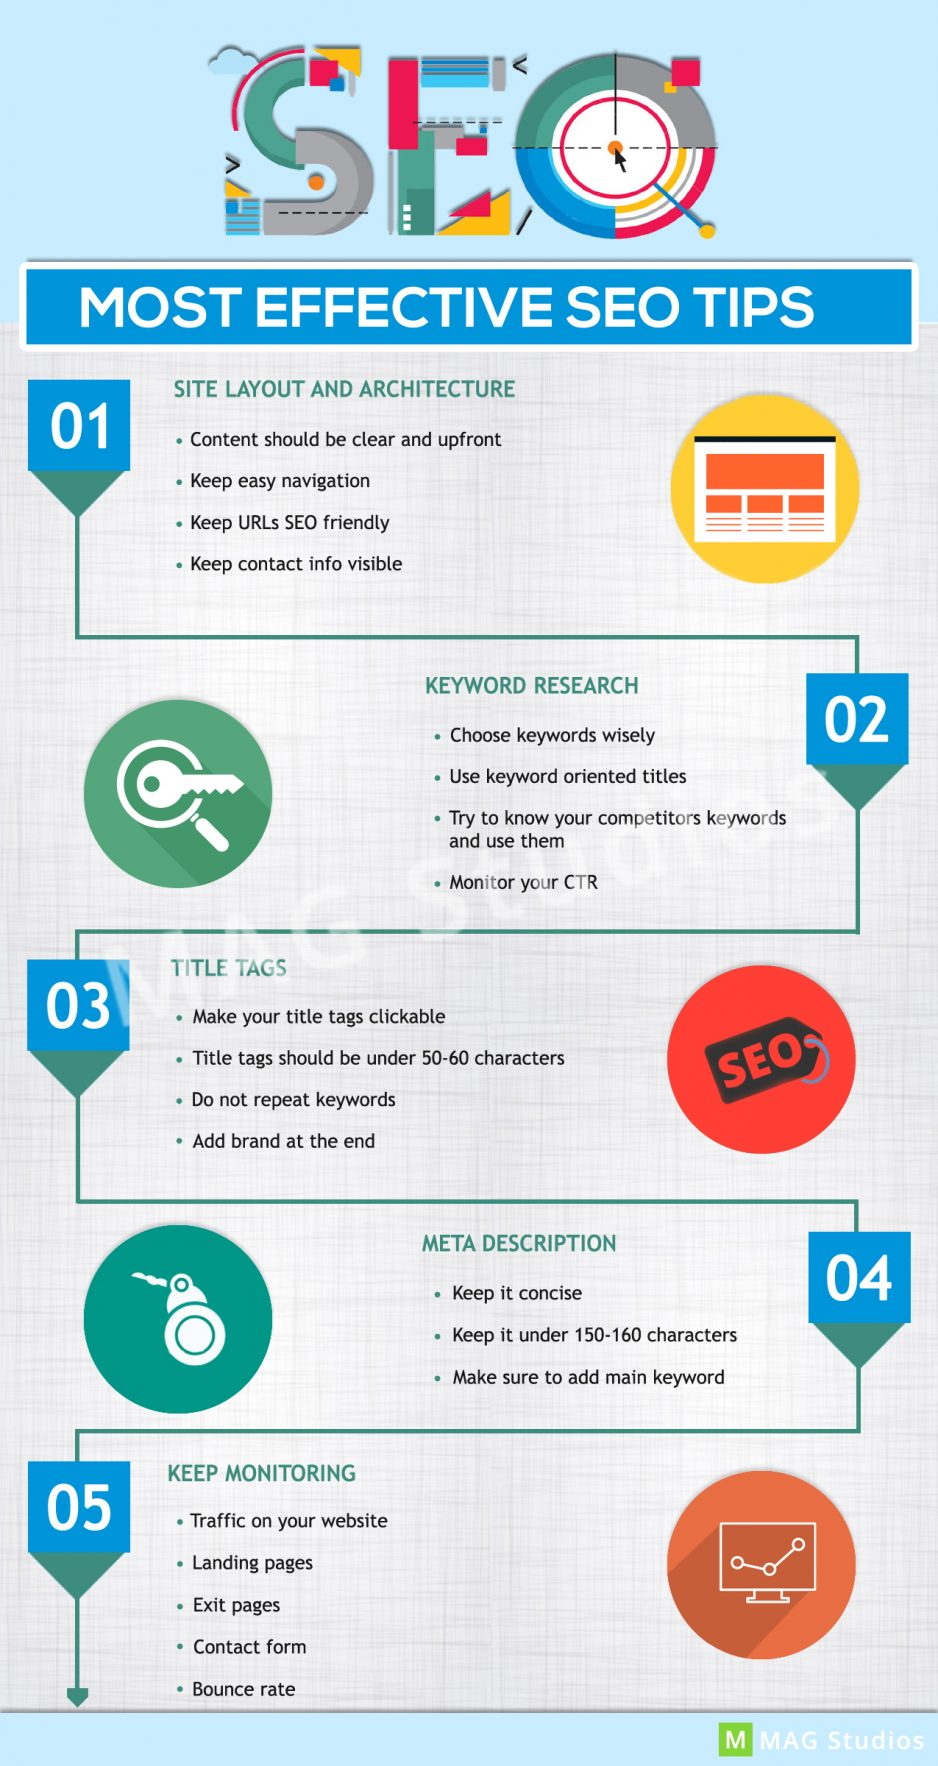 Most Effective tips for SEO